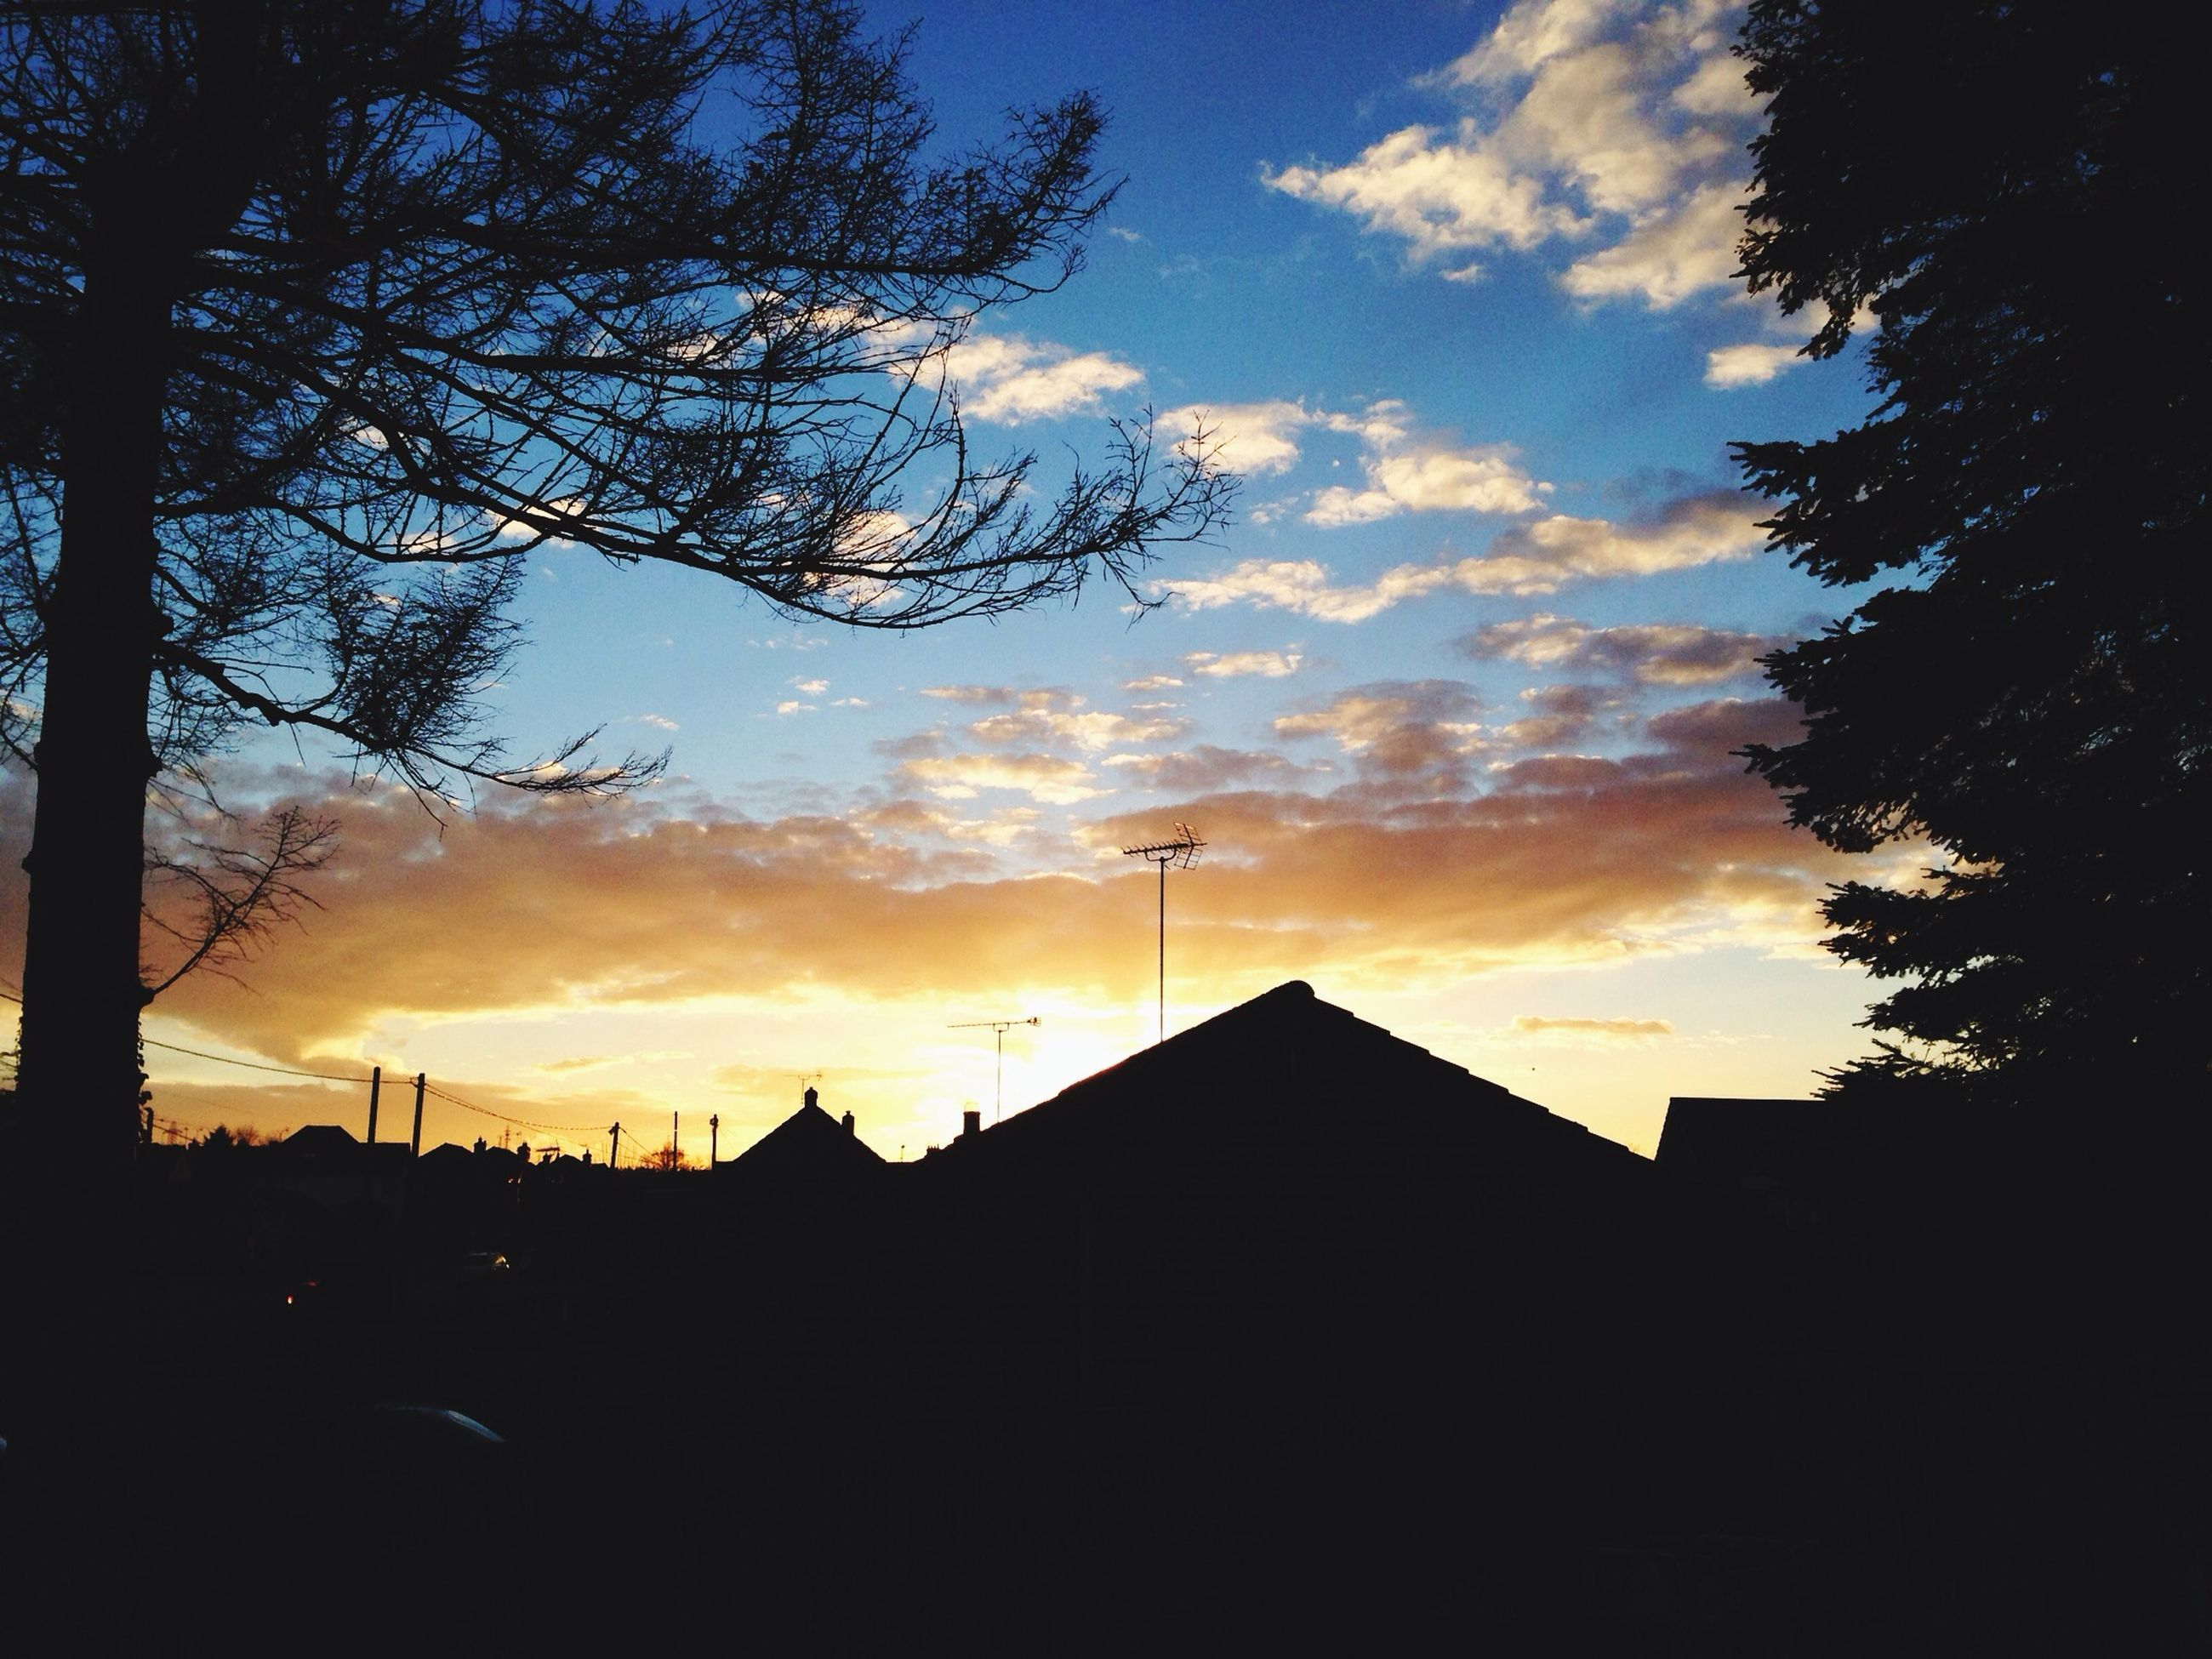 sunset, building exterior, silhouette, architecture, sky, built structure, orange color, tree, cloud - sky, house, low angle view, residential structure, cloud, residential building, beauty in nature, outdoors, city, nature, building, dramatic sky